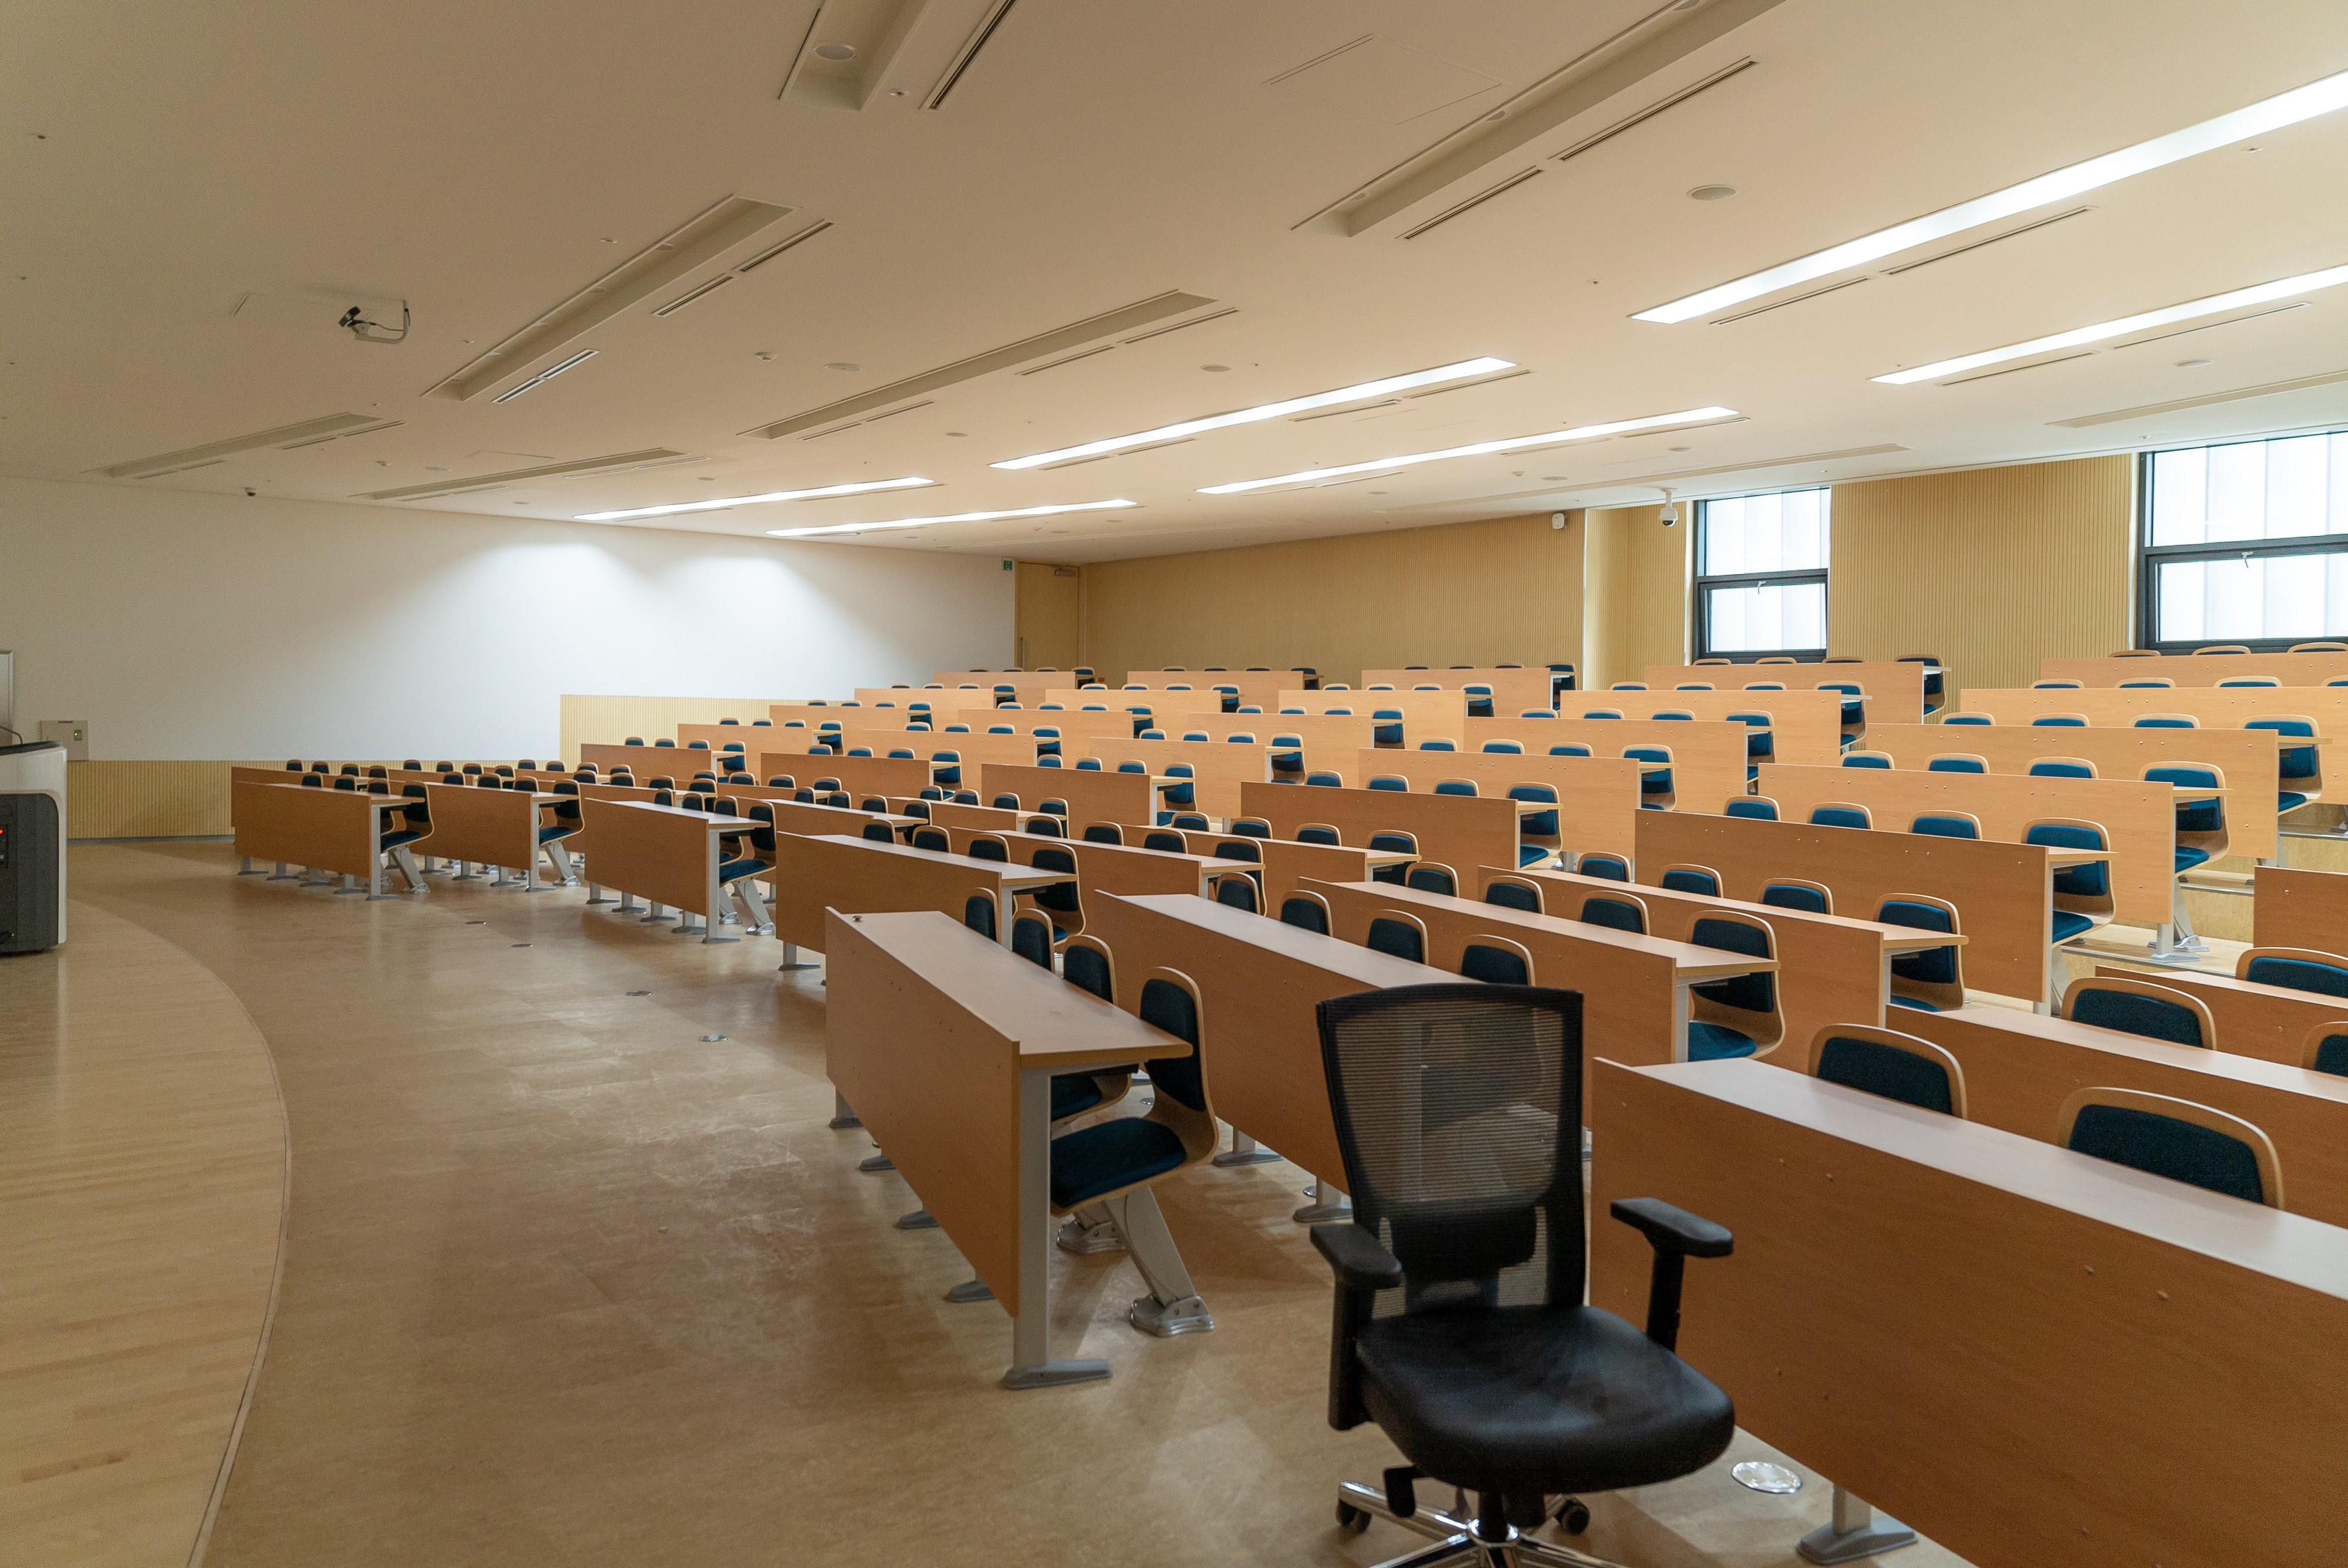 Empty theater style classroom with wooden student chairs and a black swivel intructor's chair